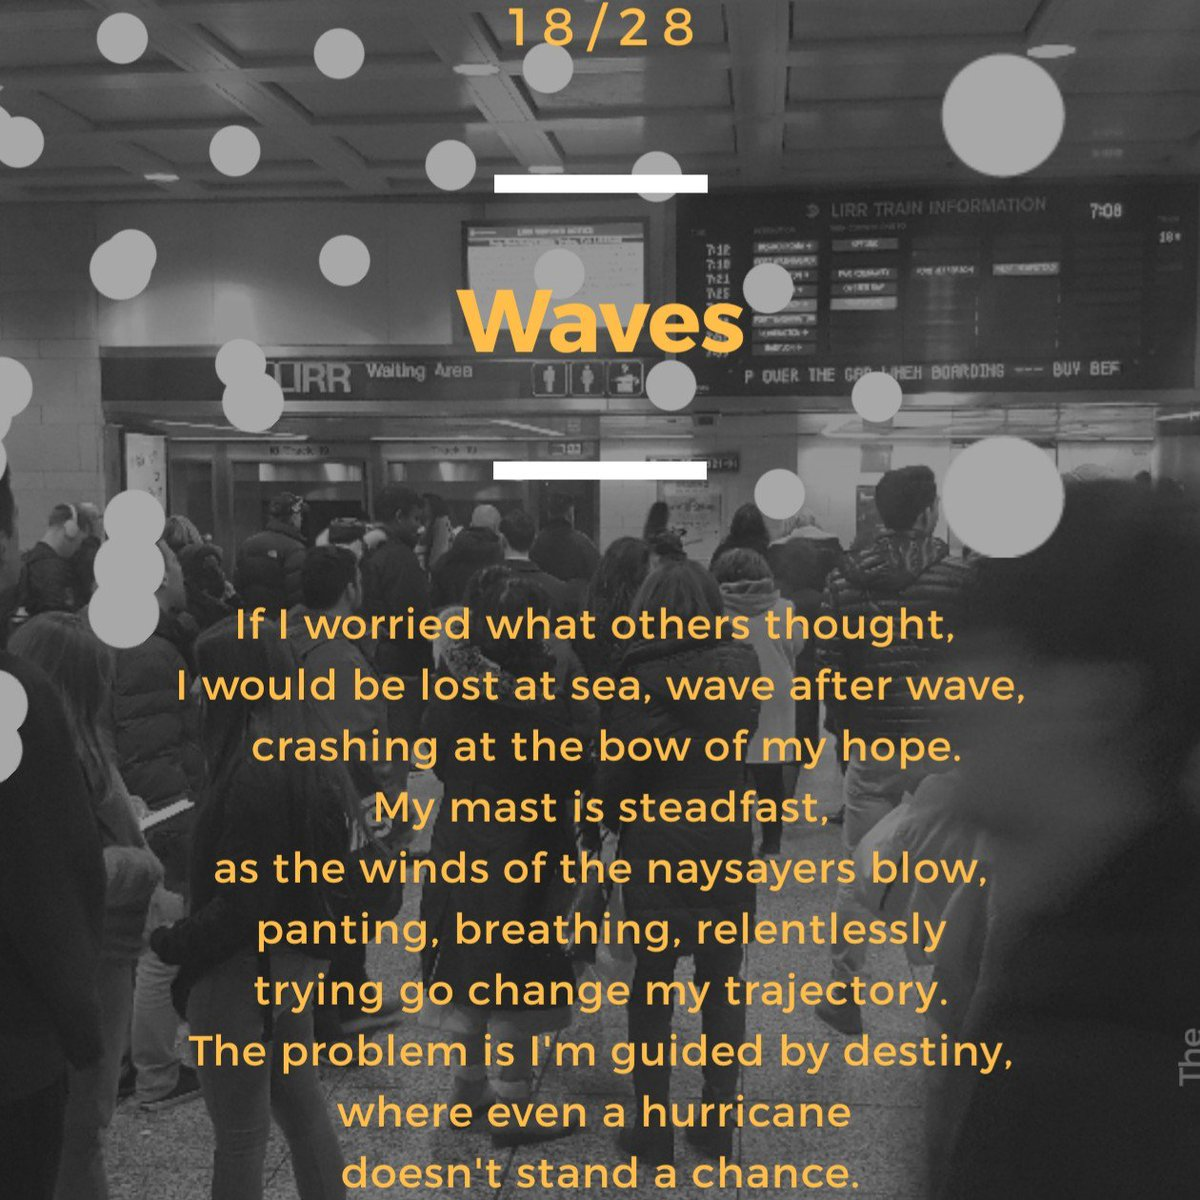 18/28  You can be the waves of the sea as you see me wave at you...  #destiny #upgrade #makeithappen #goals #dreamchaser  #MIH #poetry #POEMS #poet #poetrycommunity #poetrylovers #poetrylover #micropoetry #poetryislife